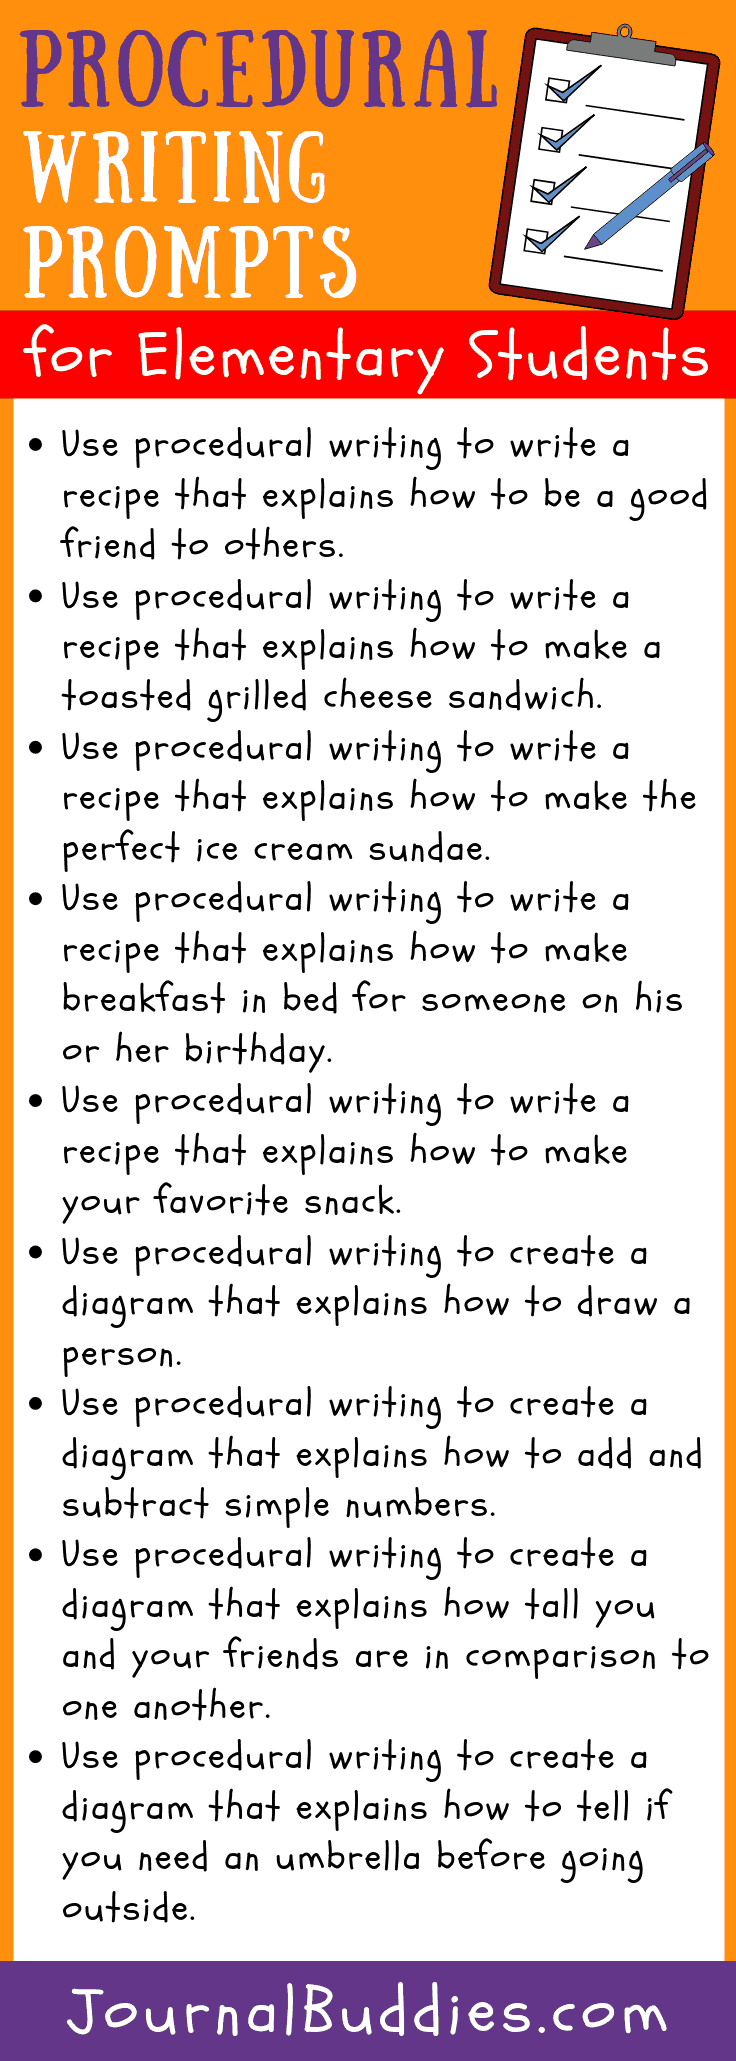 Elementary Procedural Writing Ideas